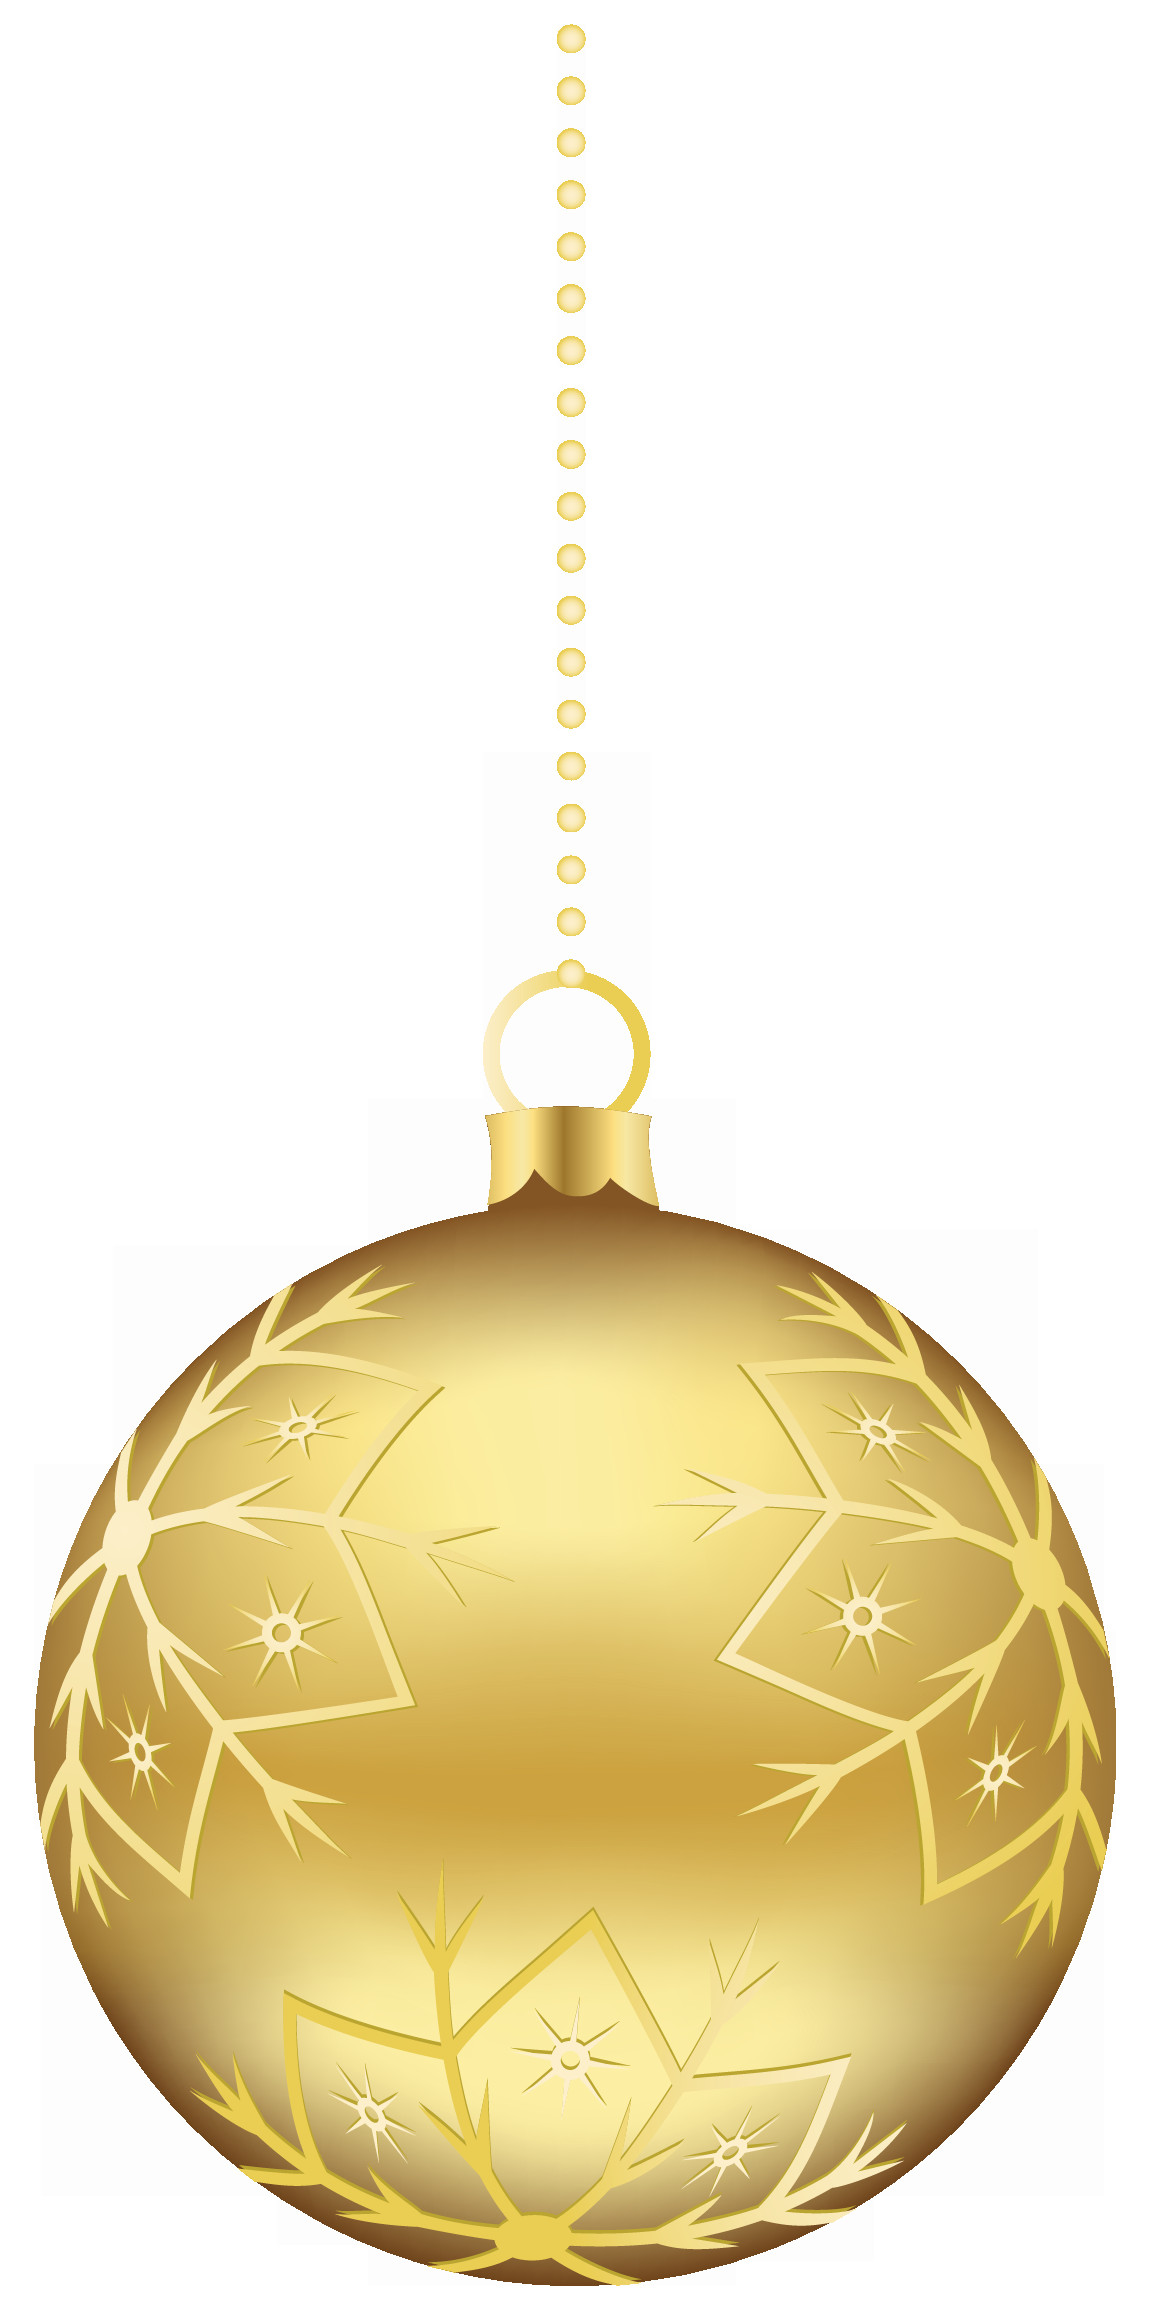 Christmas ornaments Unique Gold Christmas ornaments – Happy Holidays Of Incredible 48 Images Christmas ornaments